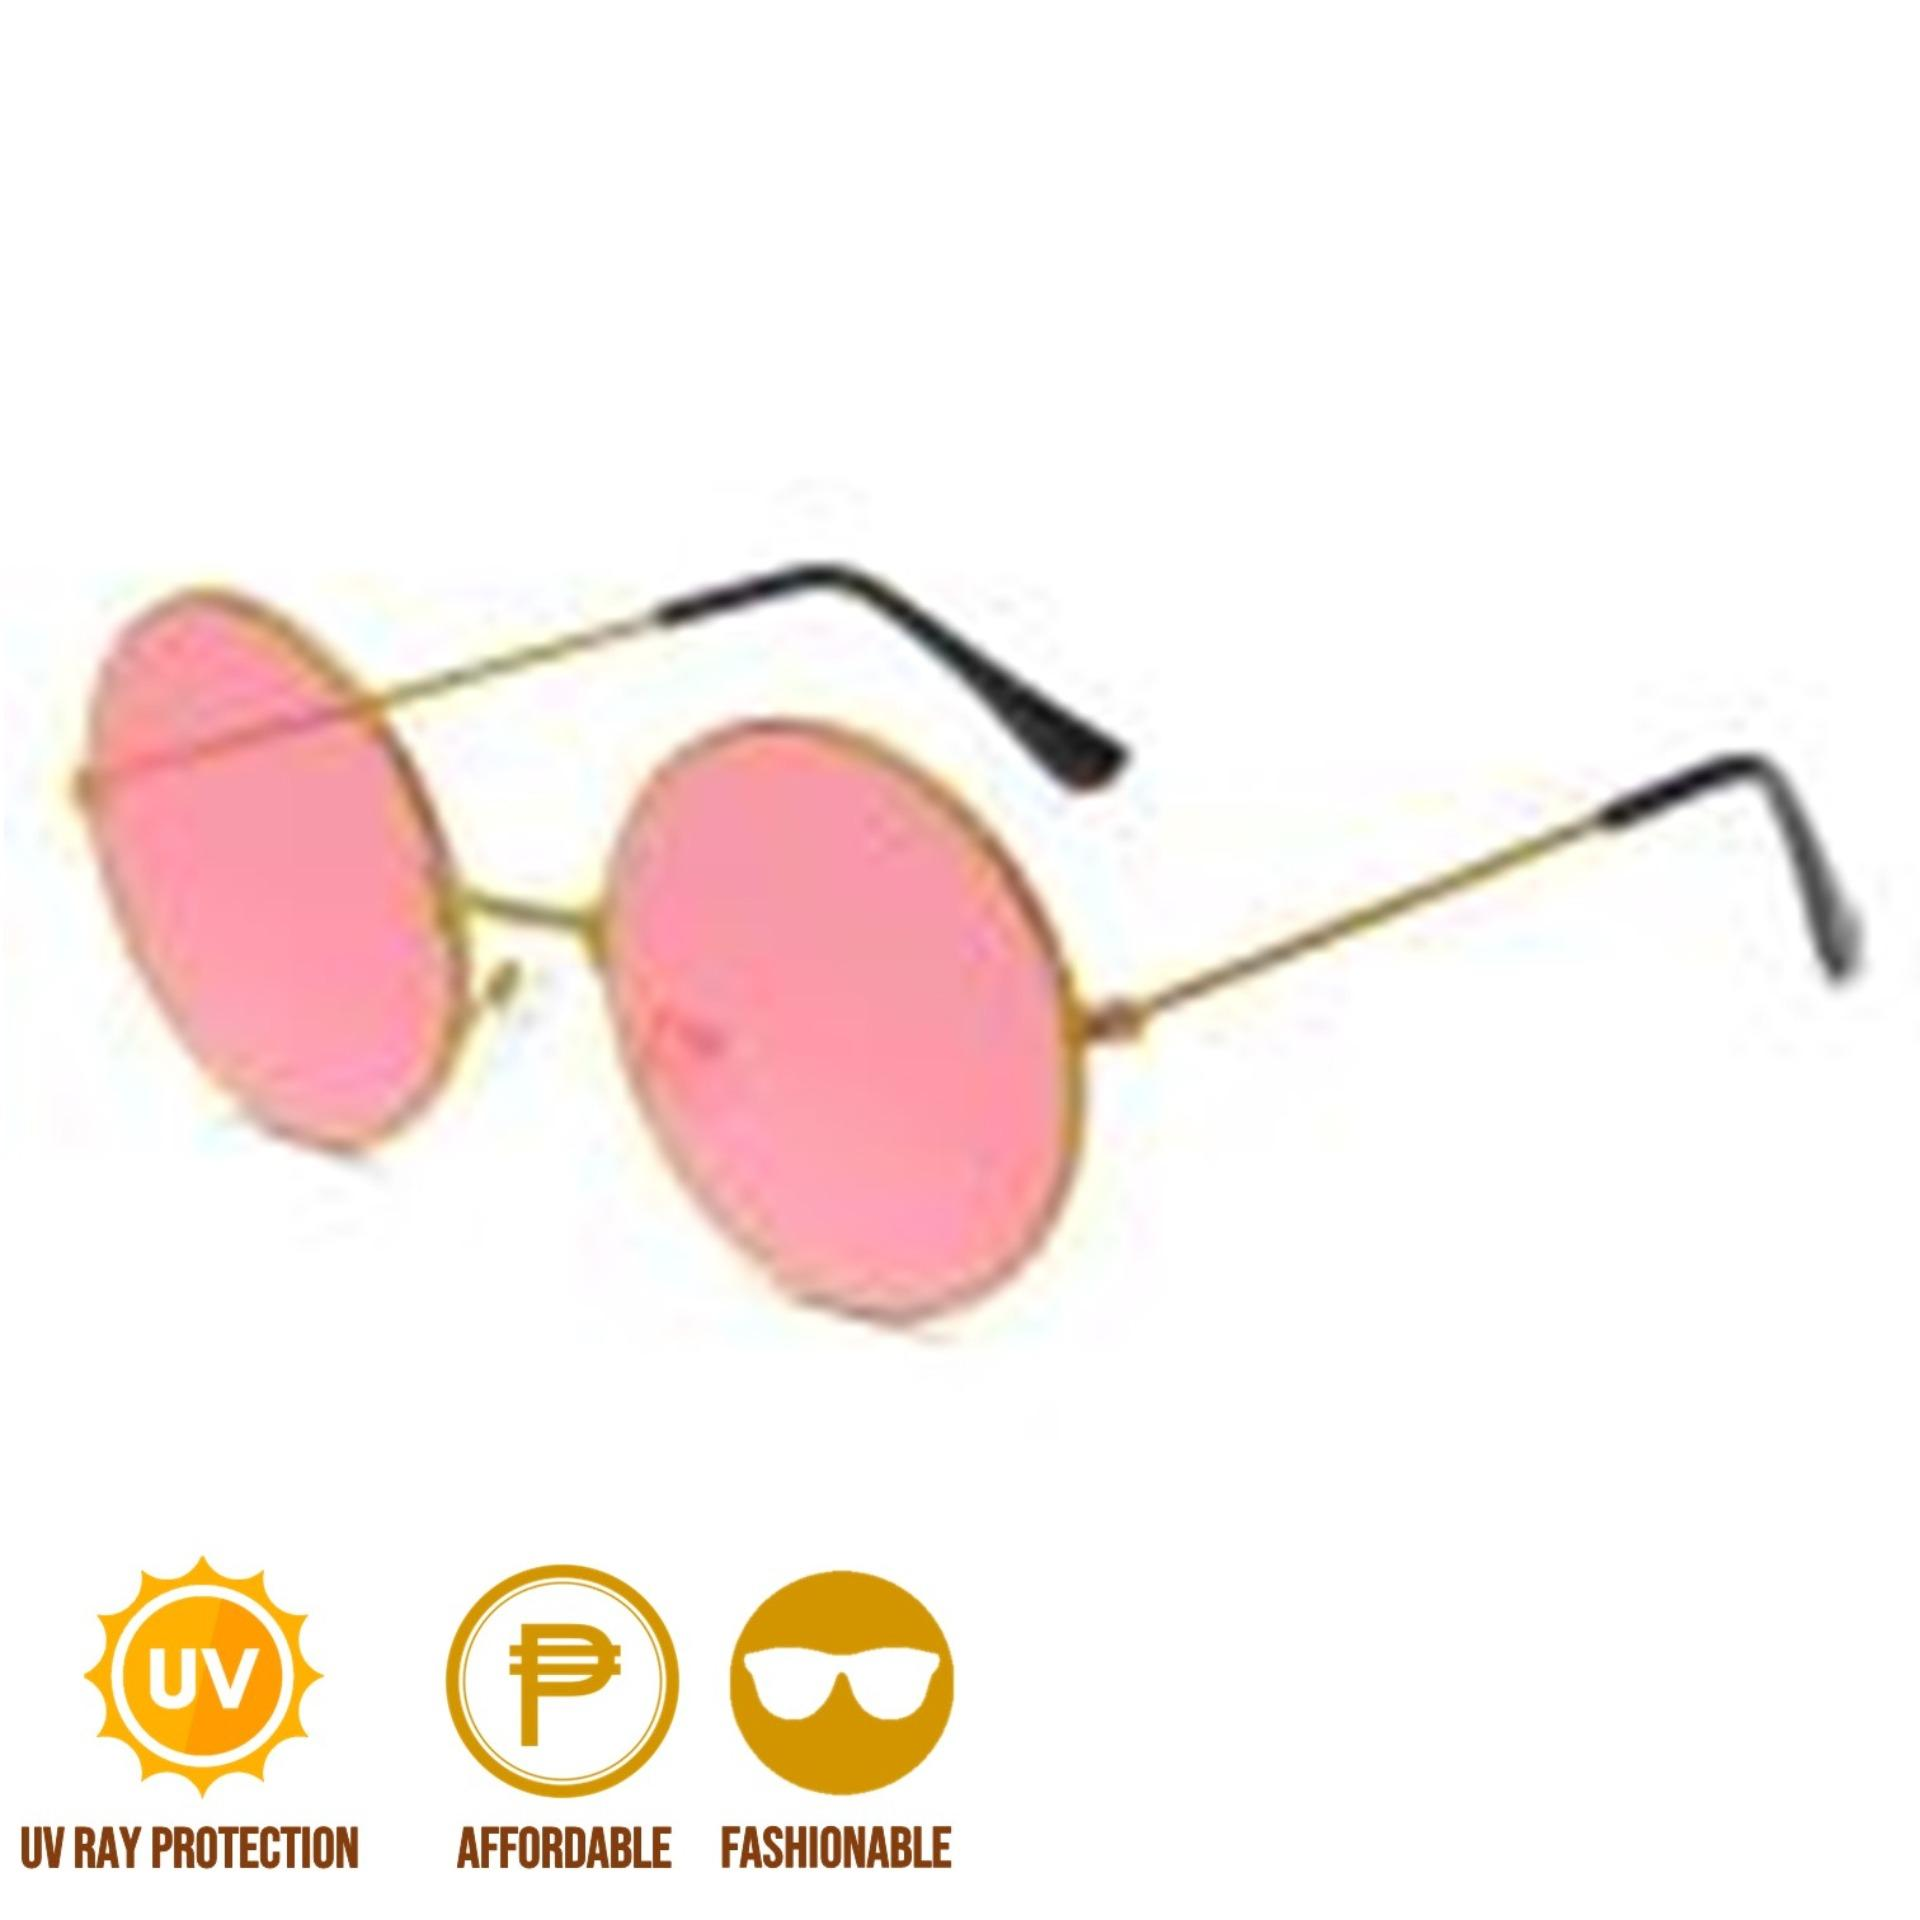 ae8a7eba86efc ANT Retro Round Style Harry Potter Colored Vintage Glasses Tint Sunglasses  Sunnies Shades Metal Frame